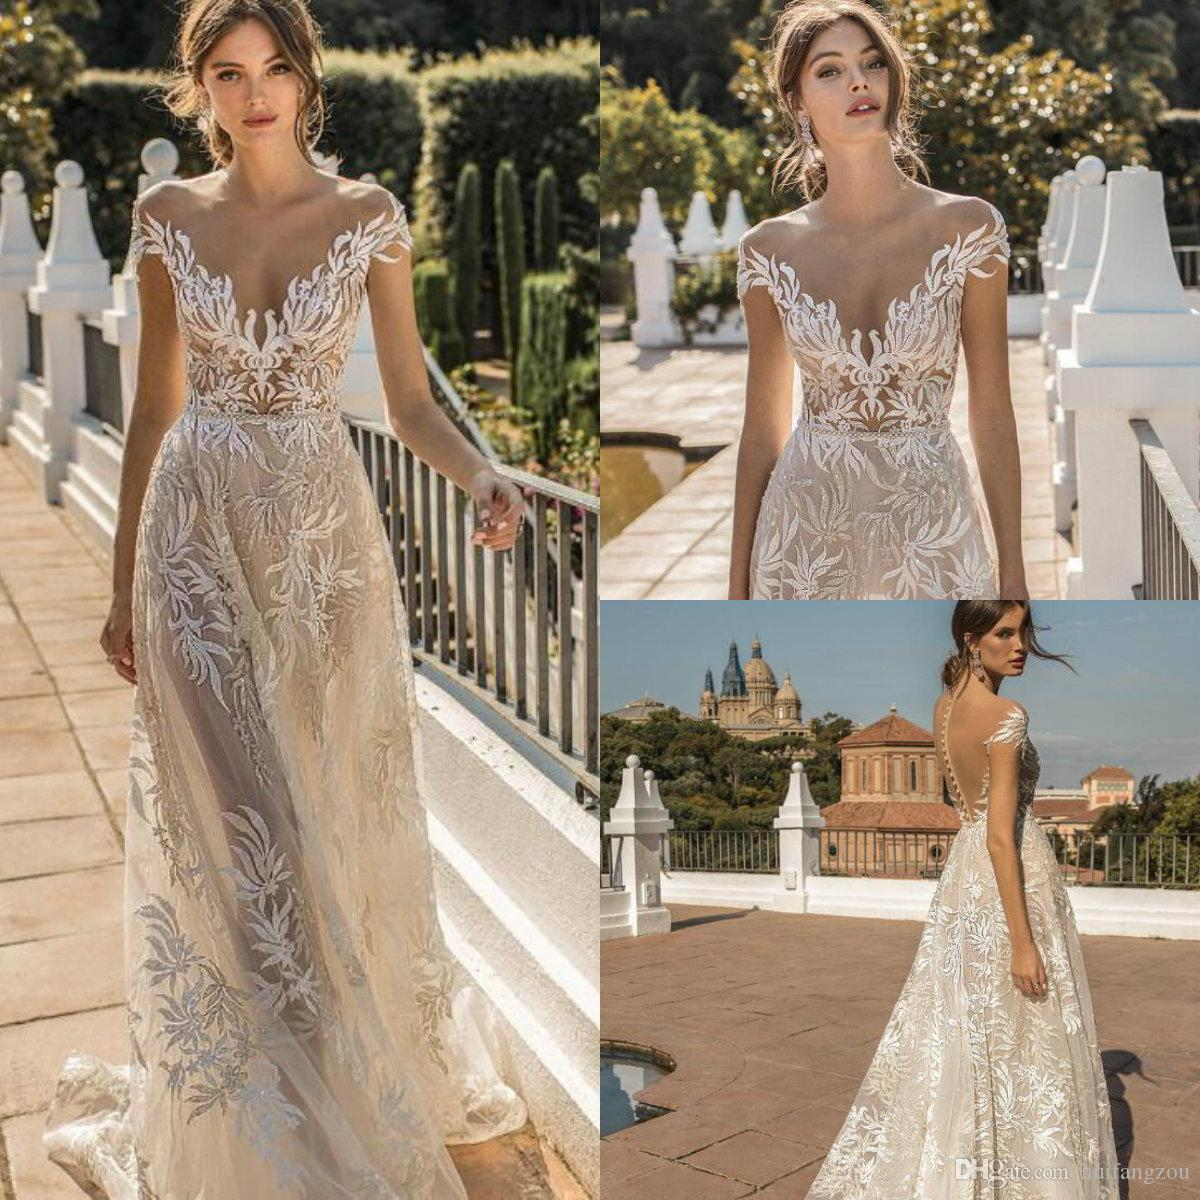 4f1010848fdd Discount Muse By Berta 2019 Wedding Dresses Sexy Sheer V Neck Short Sleeves  Wedding Dress Illusion Lace Appliques Covered Button Bridal Gowns Halter A  Line ...